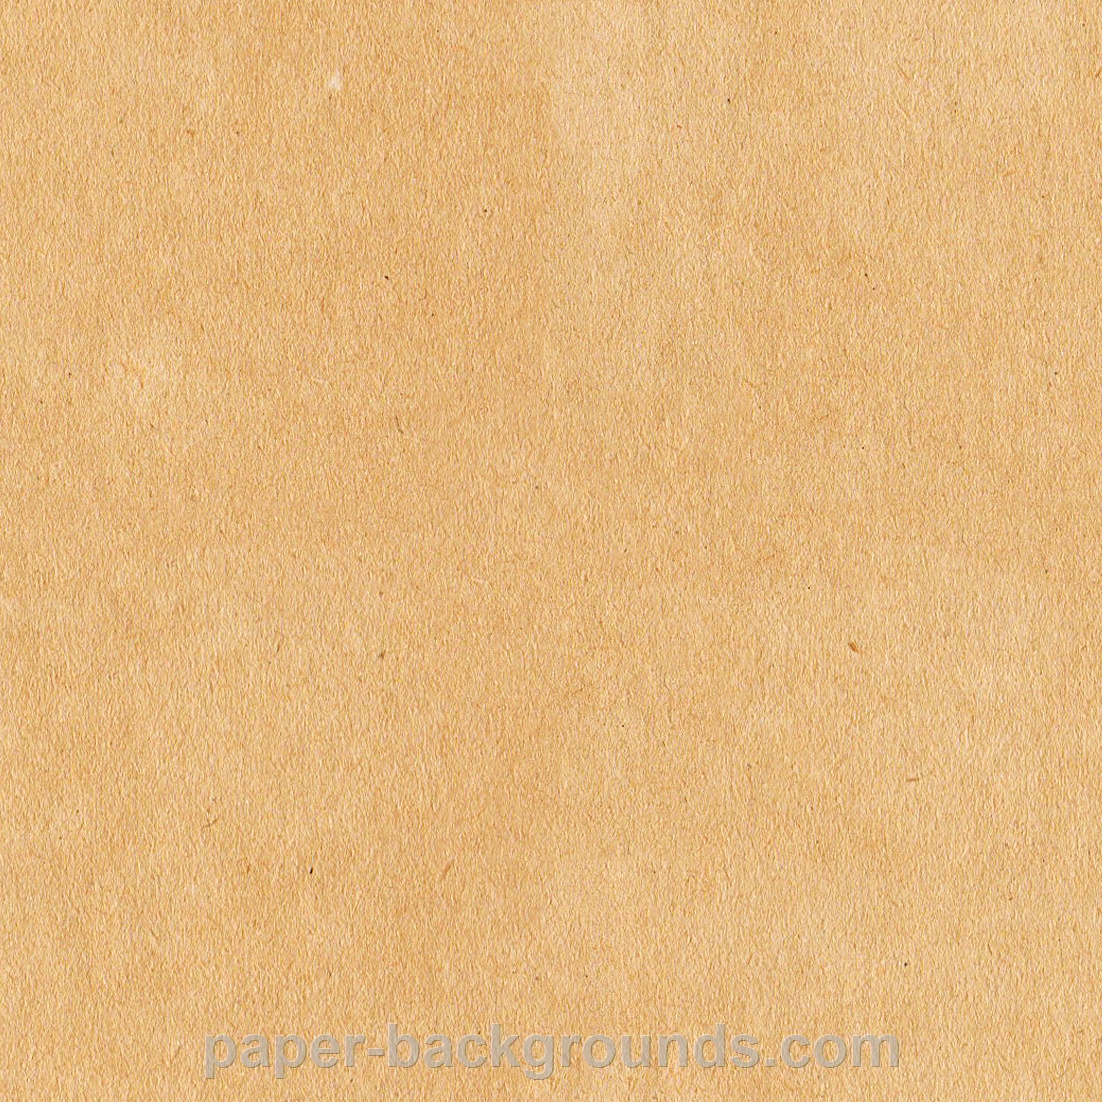 Paper Backgrounds | seamless-vintage-brown-paper-texture